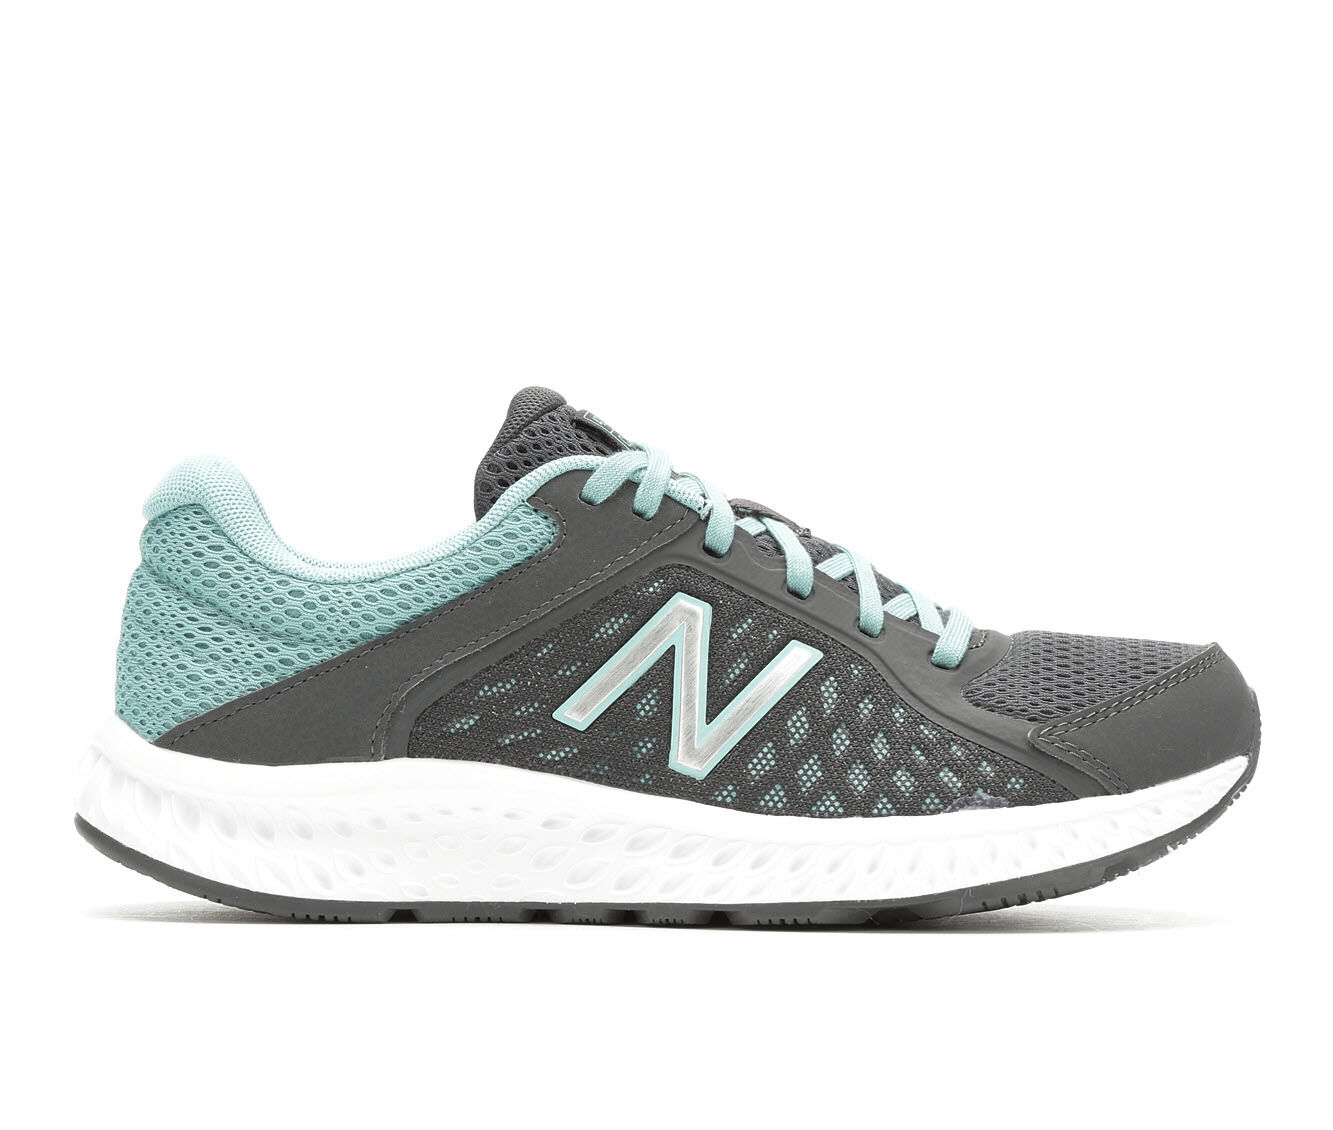 purchase authentic cheap Women's New Balance W420V4 Running Shoes Grey/Turq